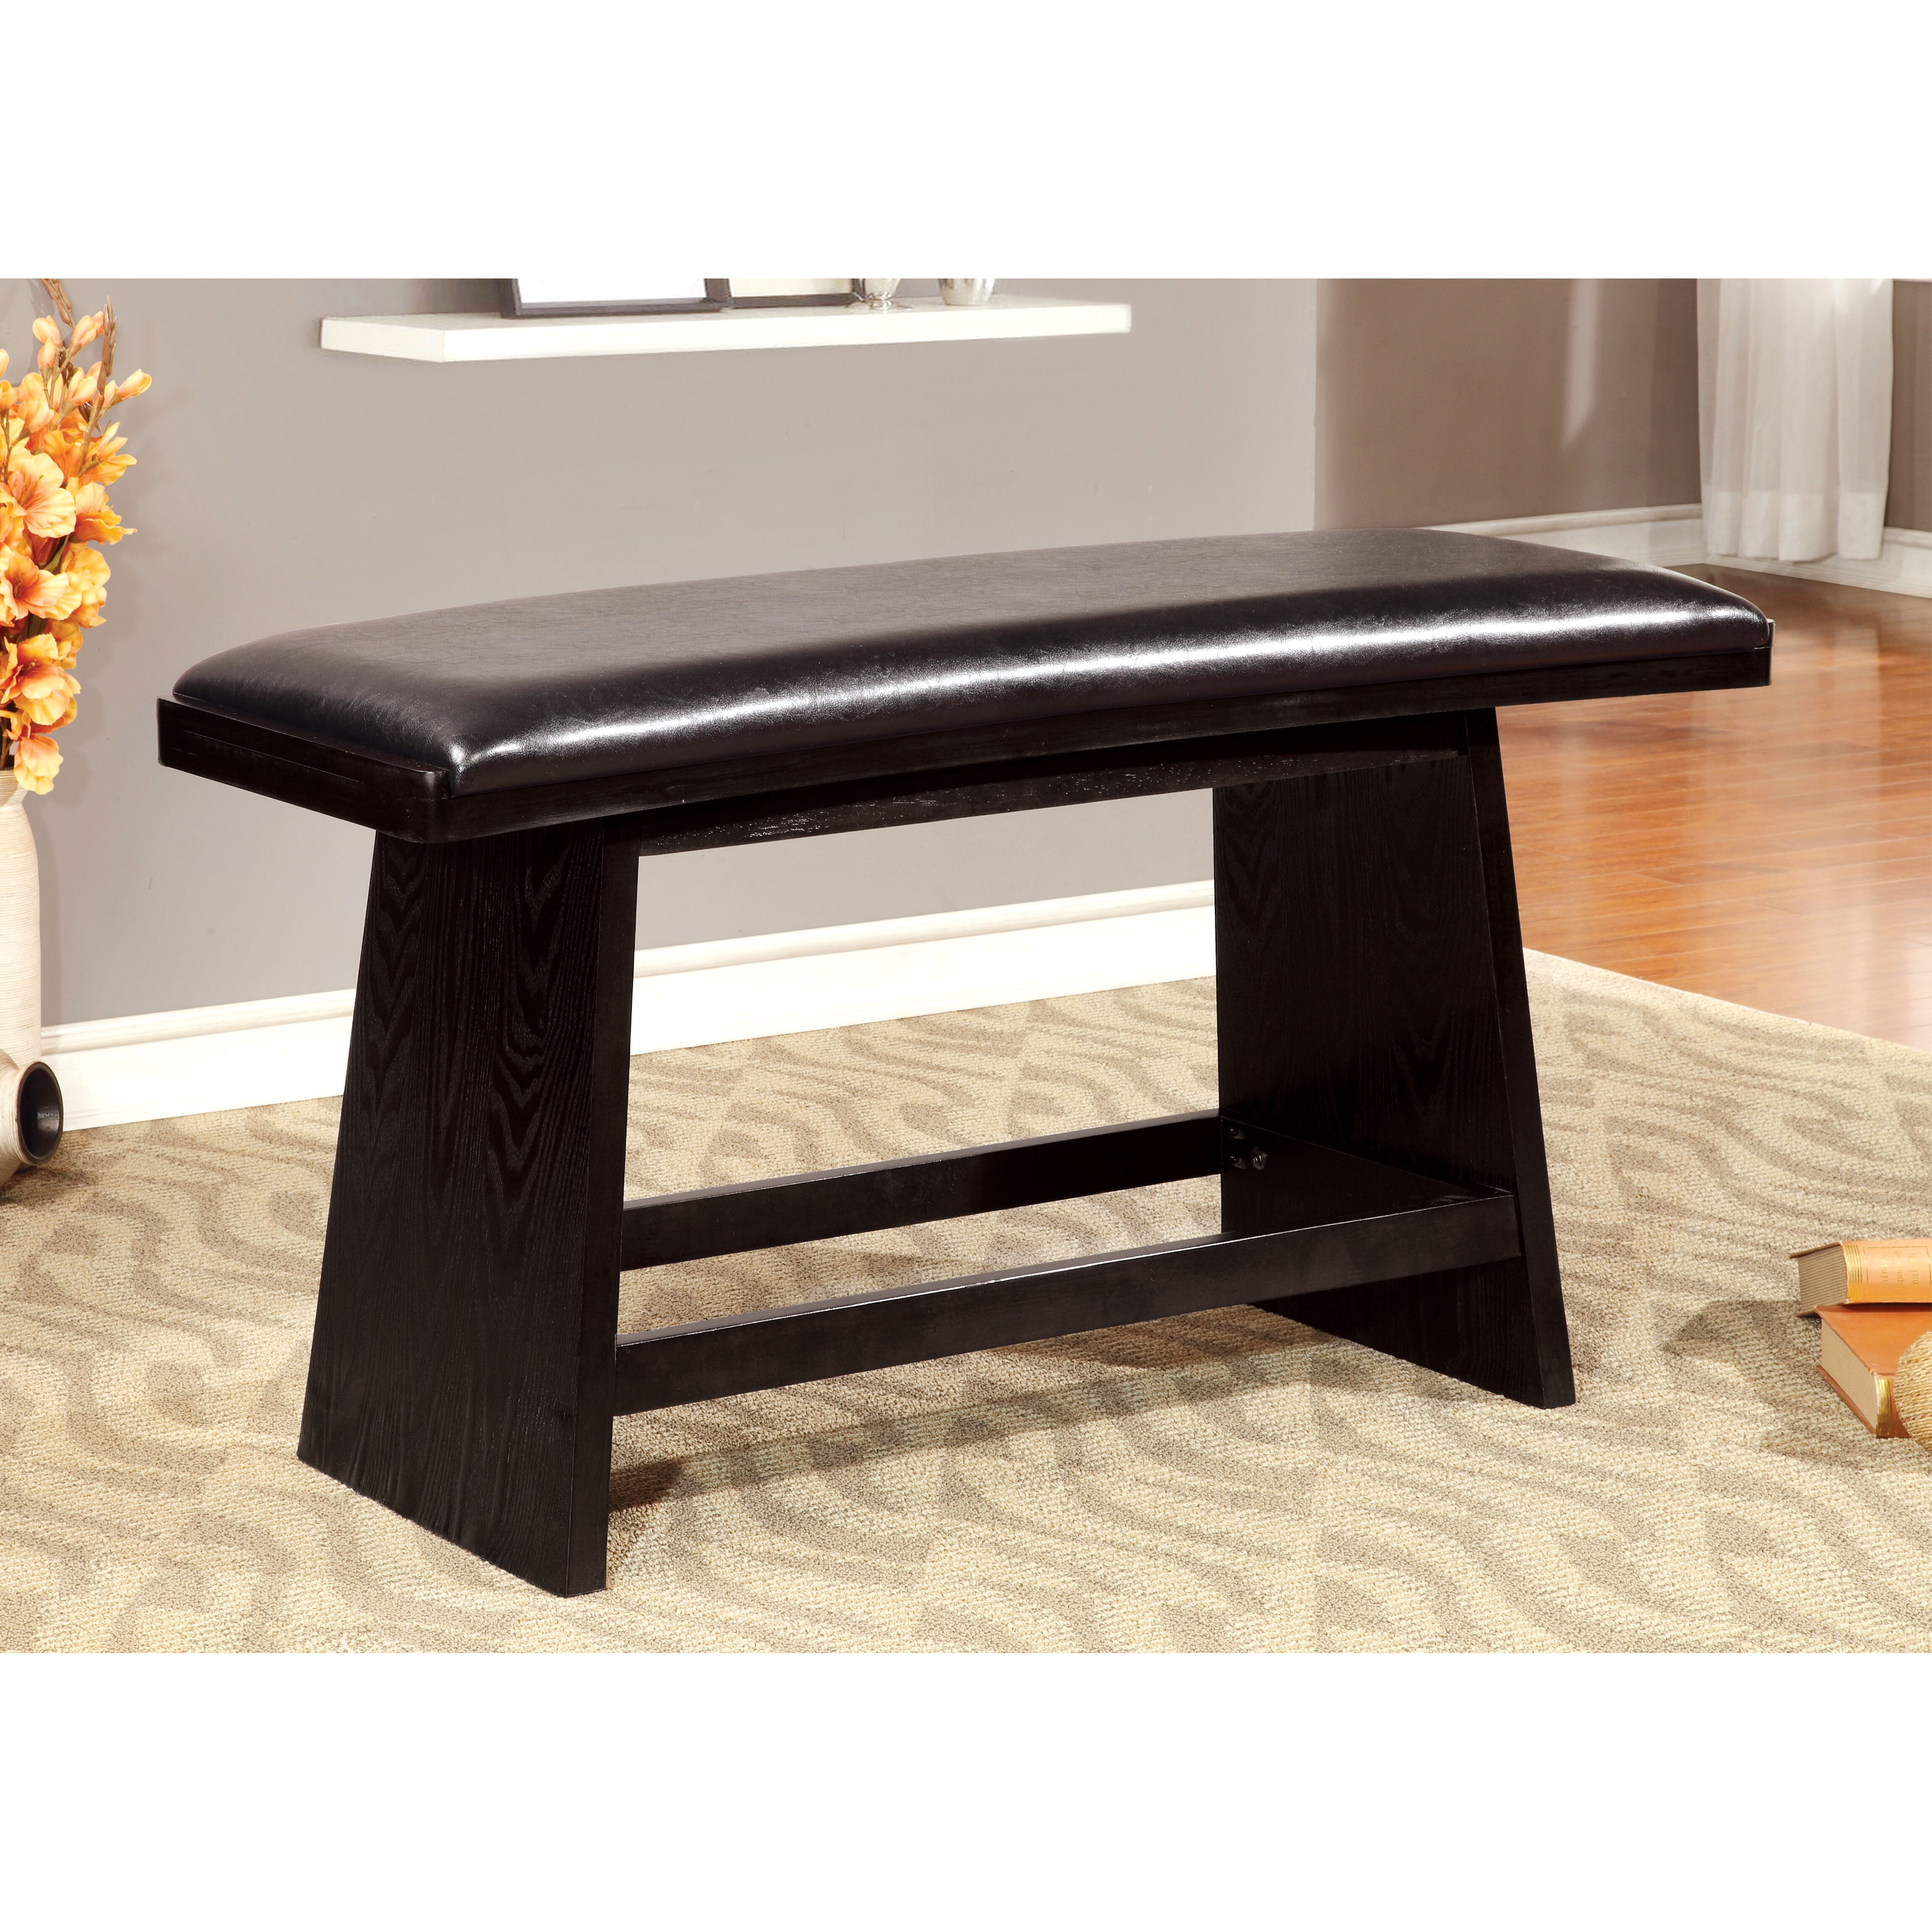 Lawrence Wood Kitchen Bench